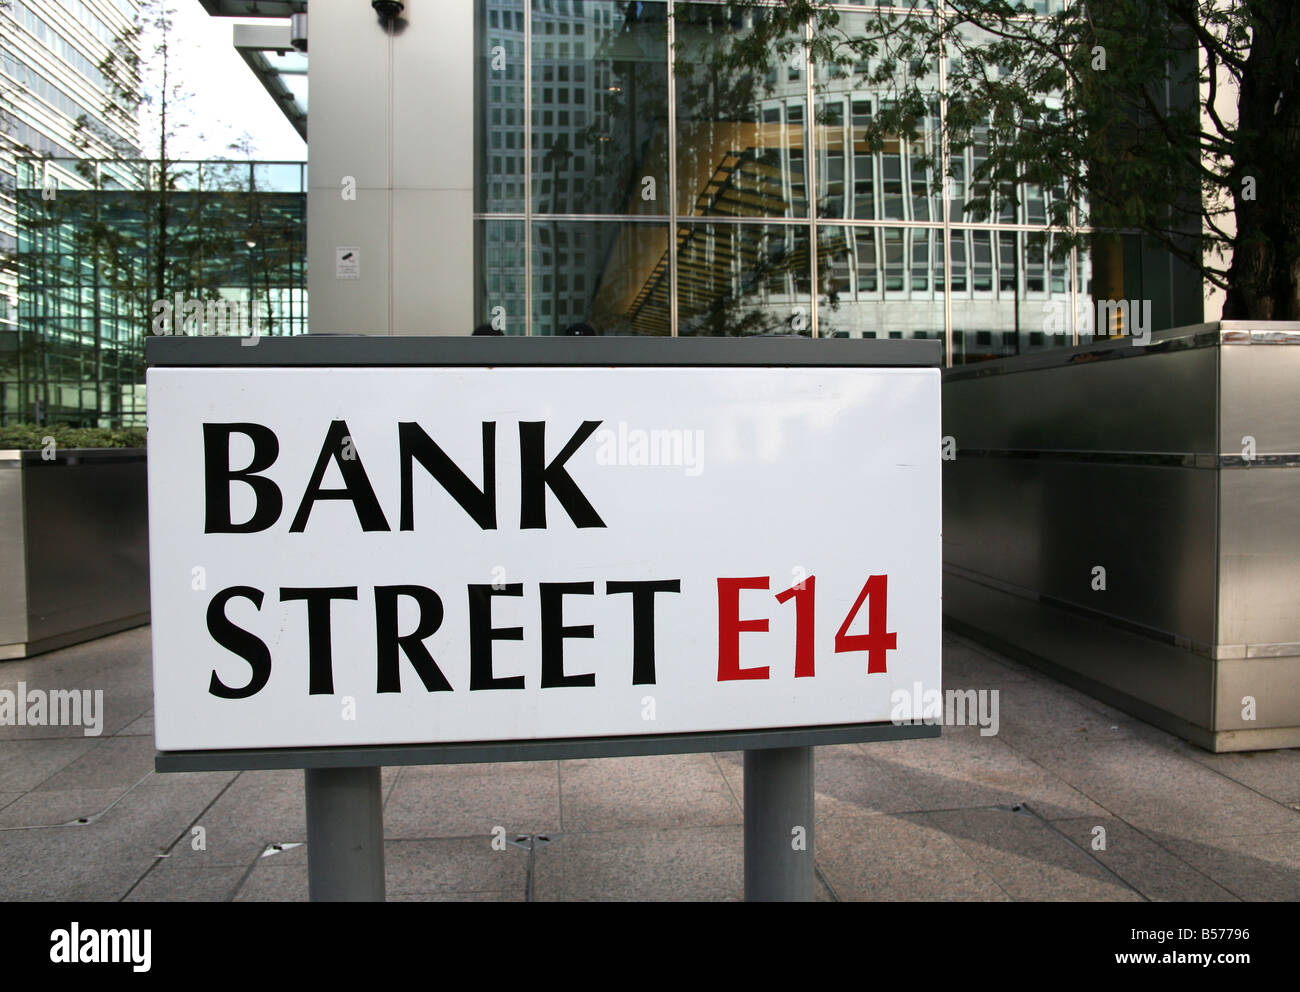 Bank Street Canary Wharf London is home to Lehman Bros among others - Stock Image